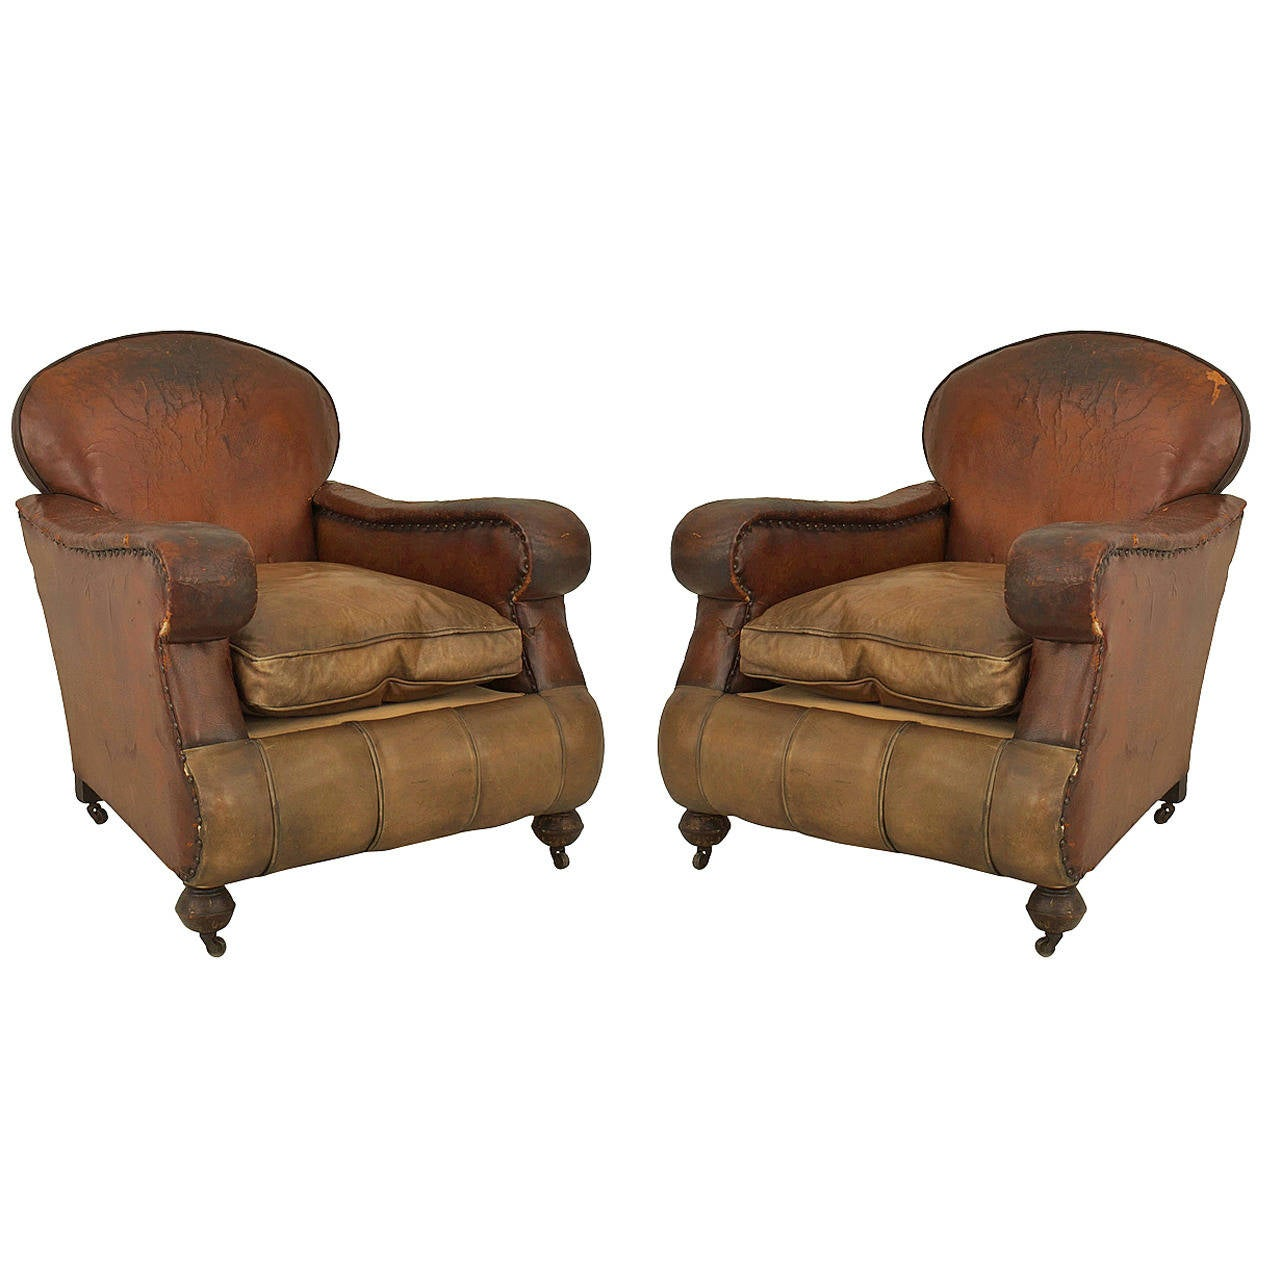 tan leather chair sale white folding covers ebay pair of 19th century english oversized brown club